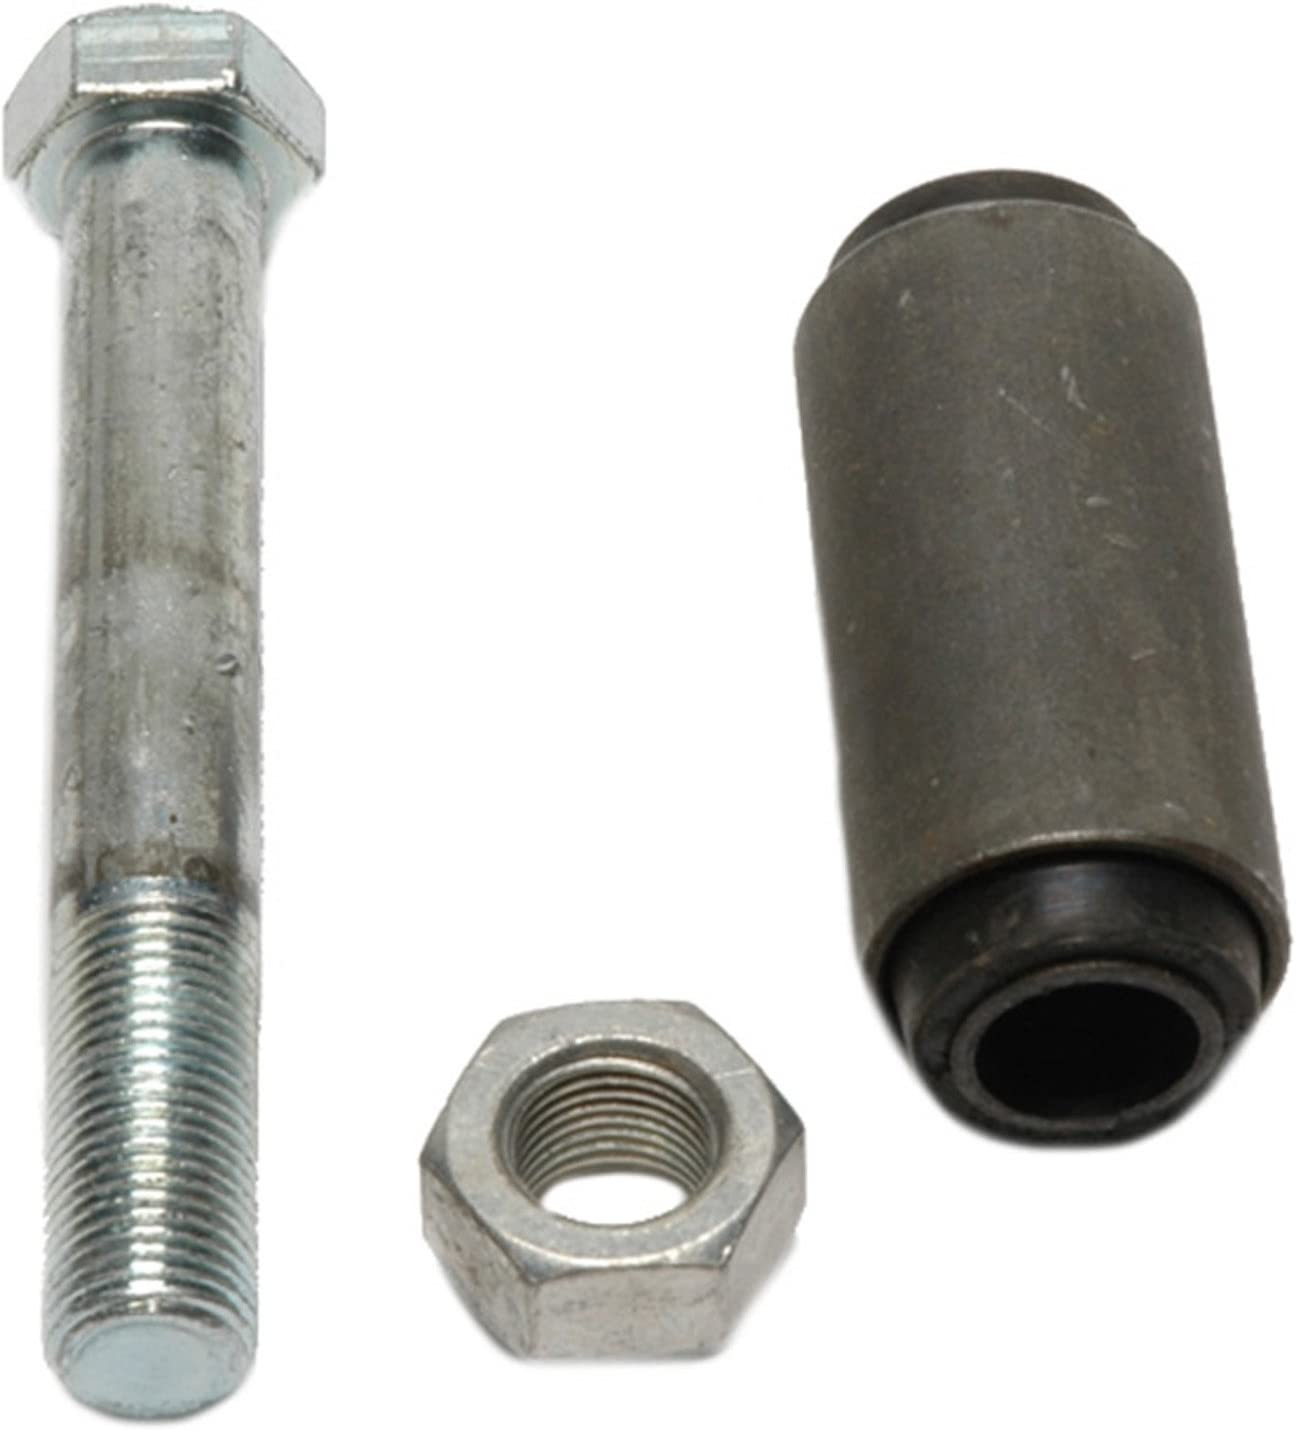 ACDelco 45G17024 Professional Leaf Spring Center Bolt Kit with Bushing